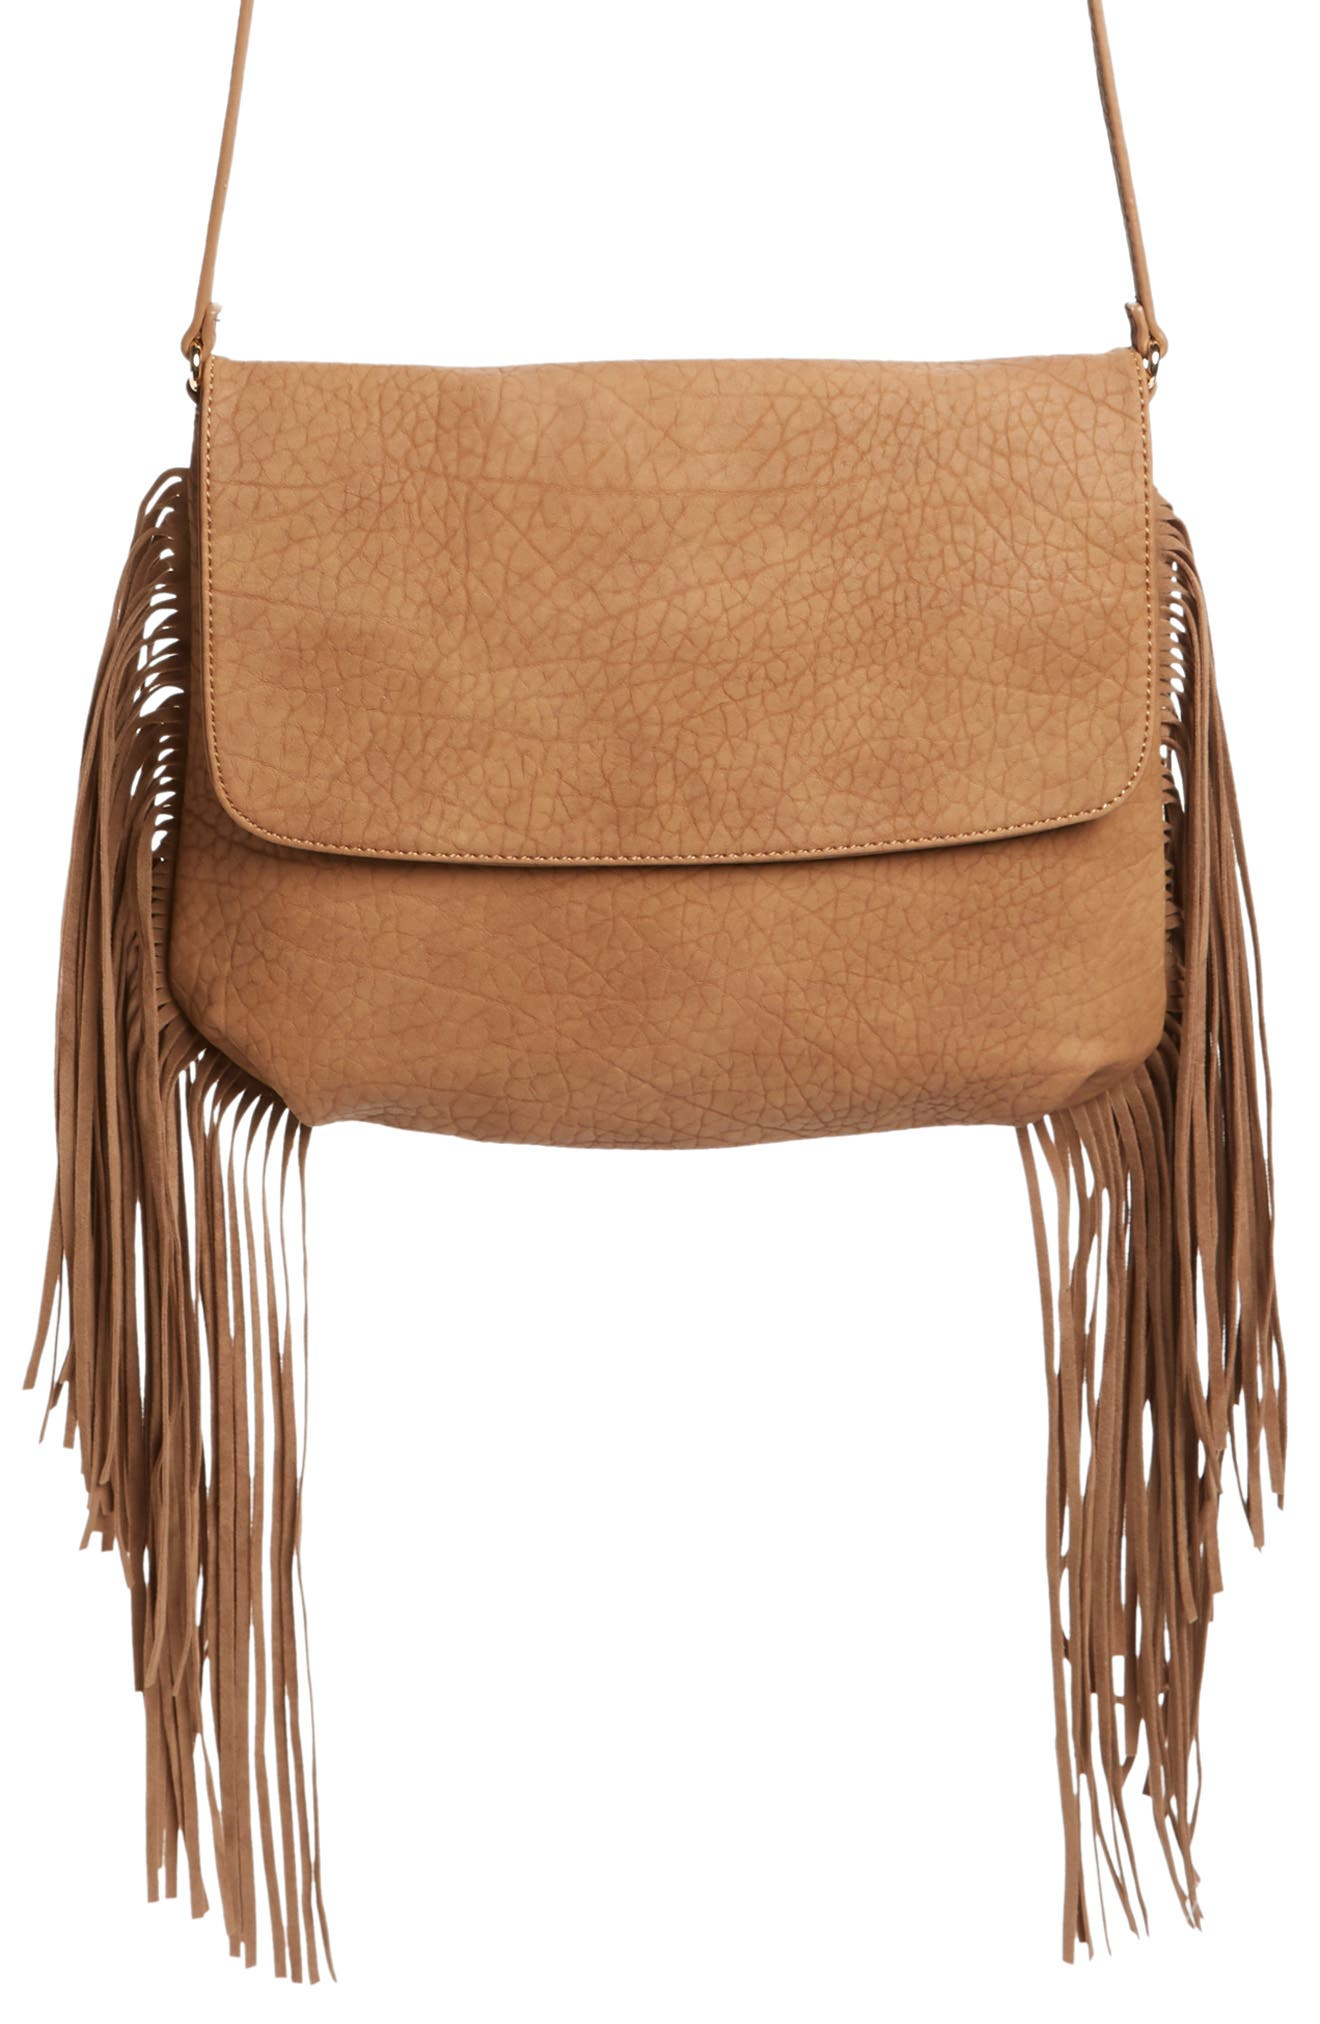 Maya Fringe Faux Leather Crossbody Bag,                             Main thumbnail 1, color,                             Cognac